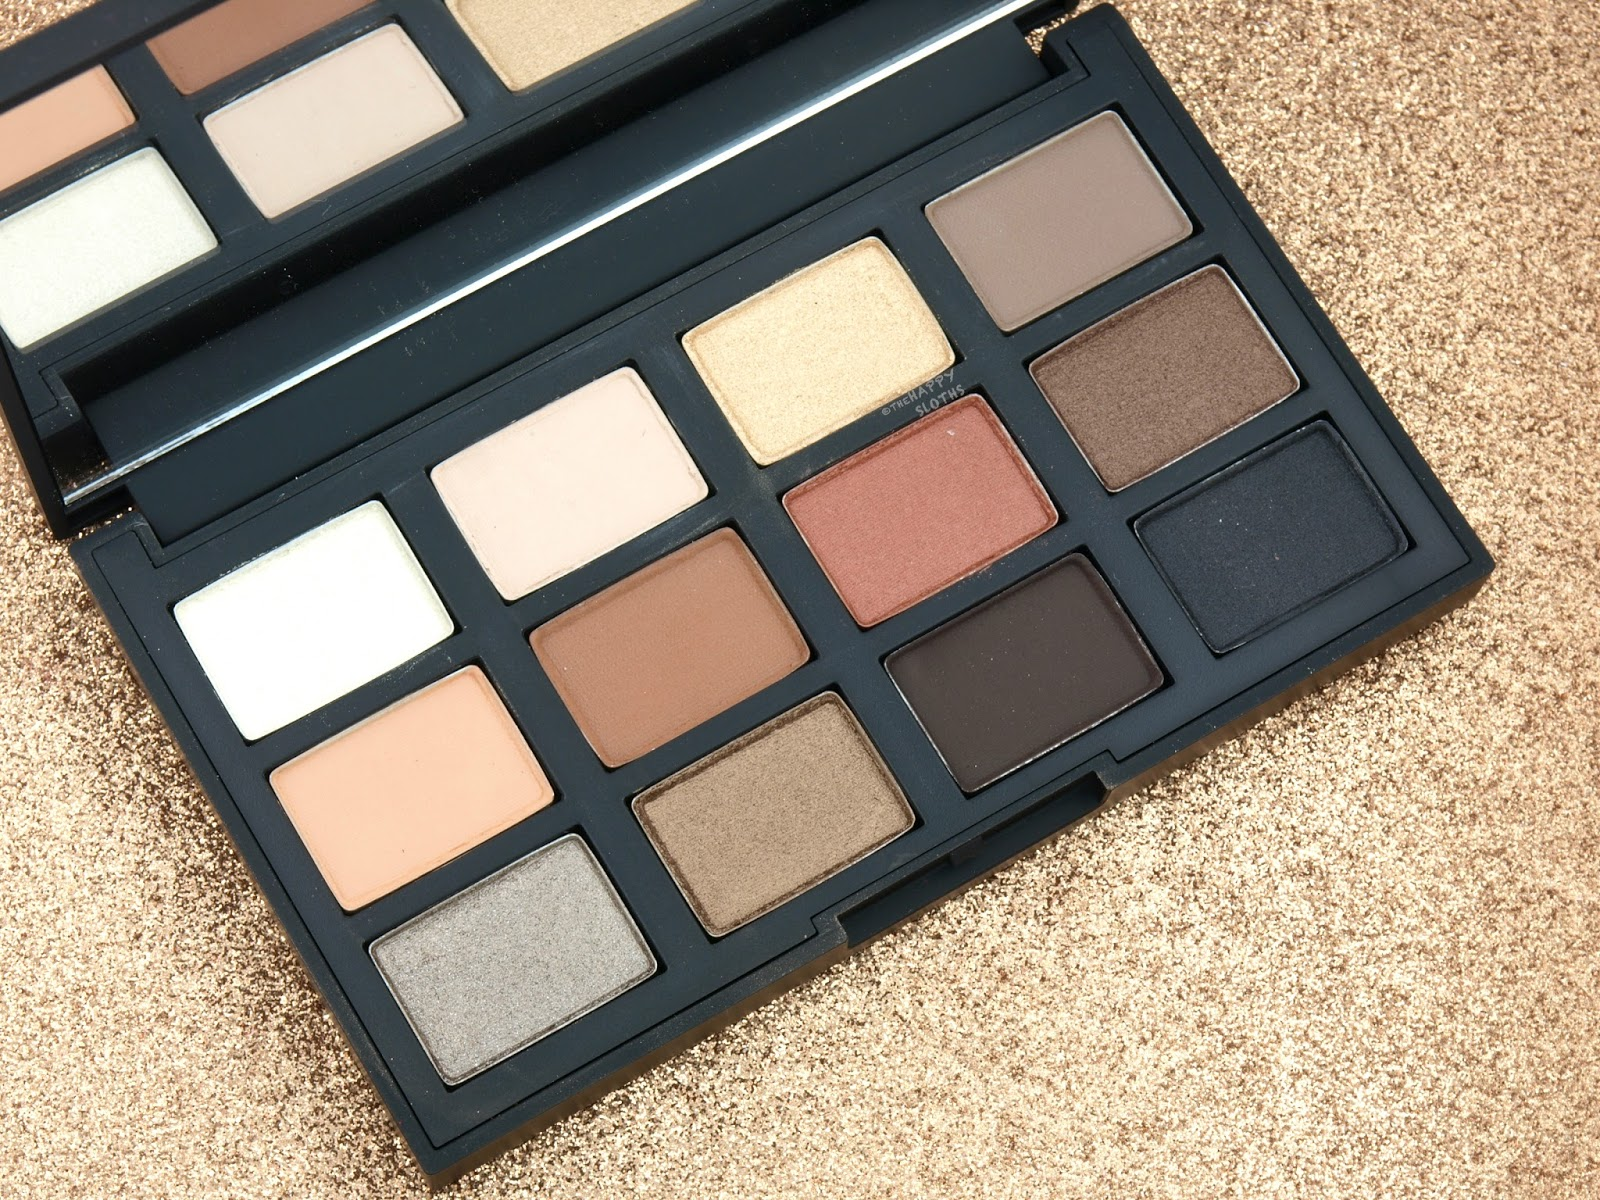 NARS NARSissist Loaded Eyeshadow Palette: Review and Swatches